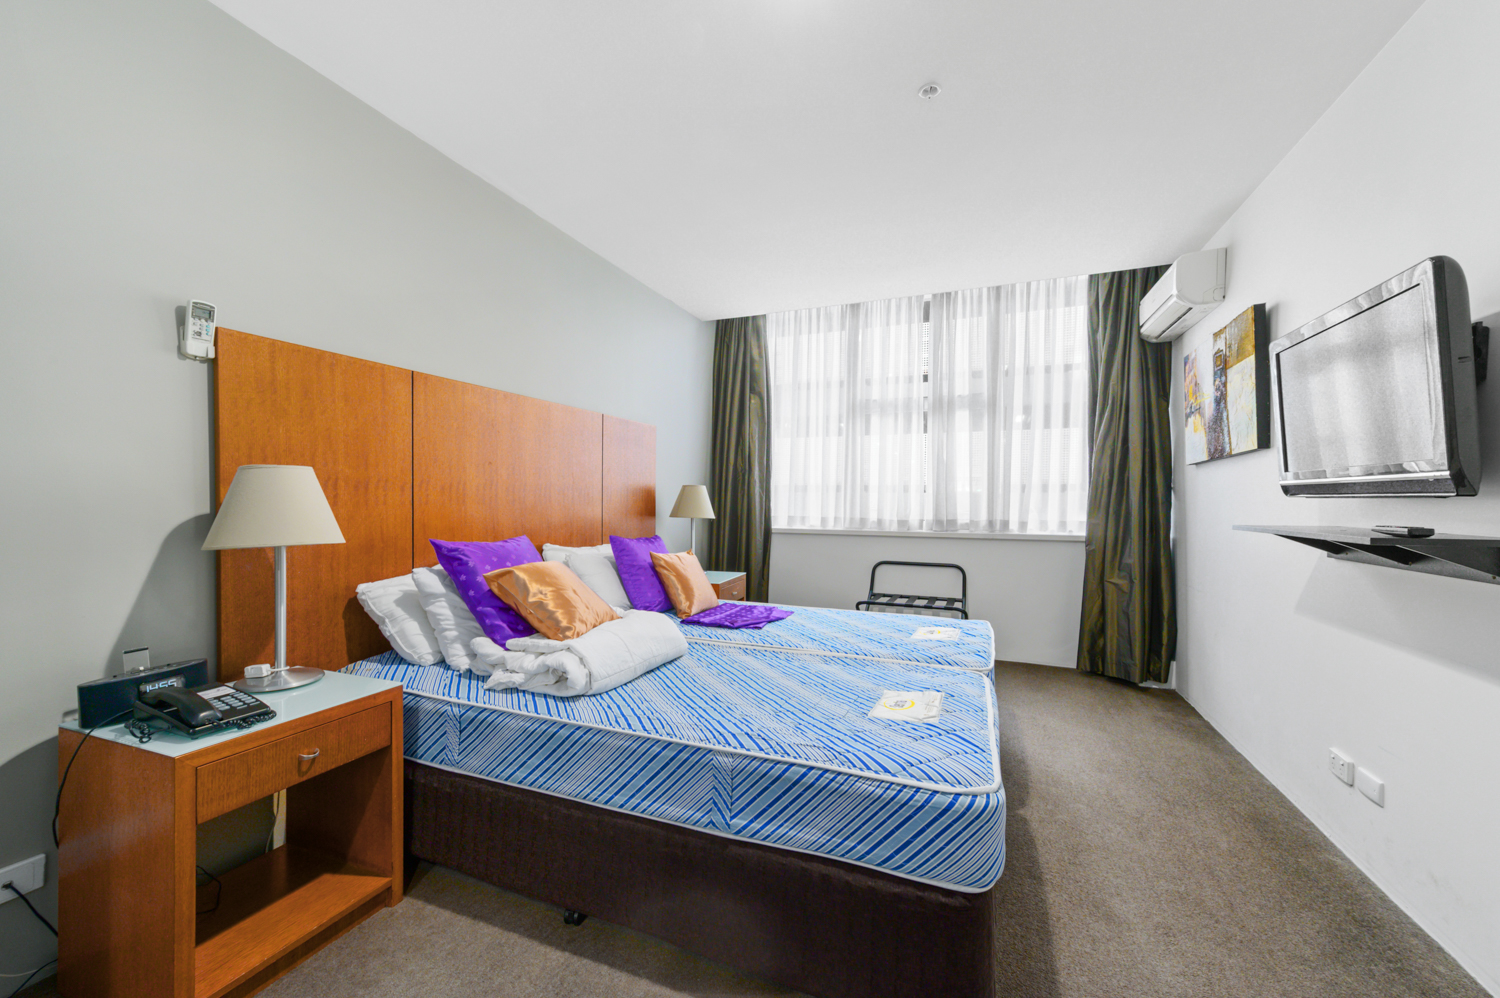 307-604-st-kilda-road-melbourne-student-accommodation-Melbourne-Bedroom-Unilodgers